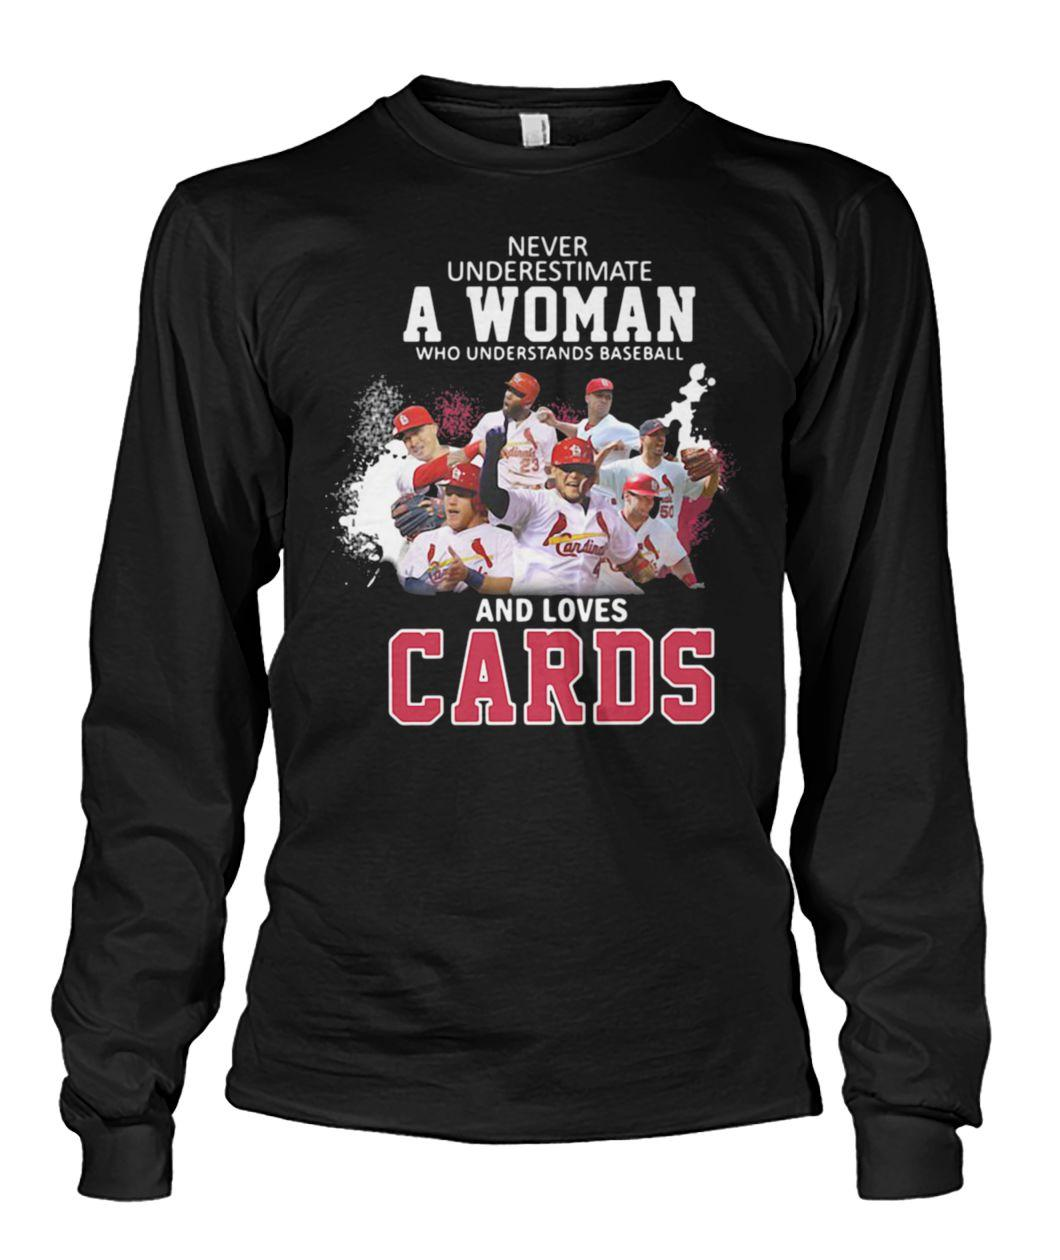 Never underestimate a woman who understands baseball and loves st louis cardinals long sleeve